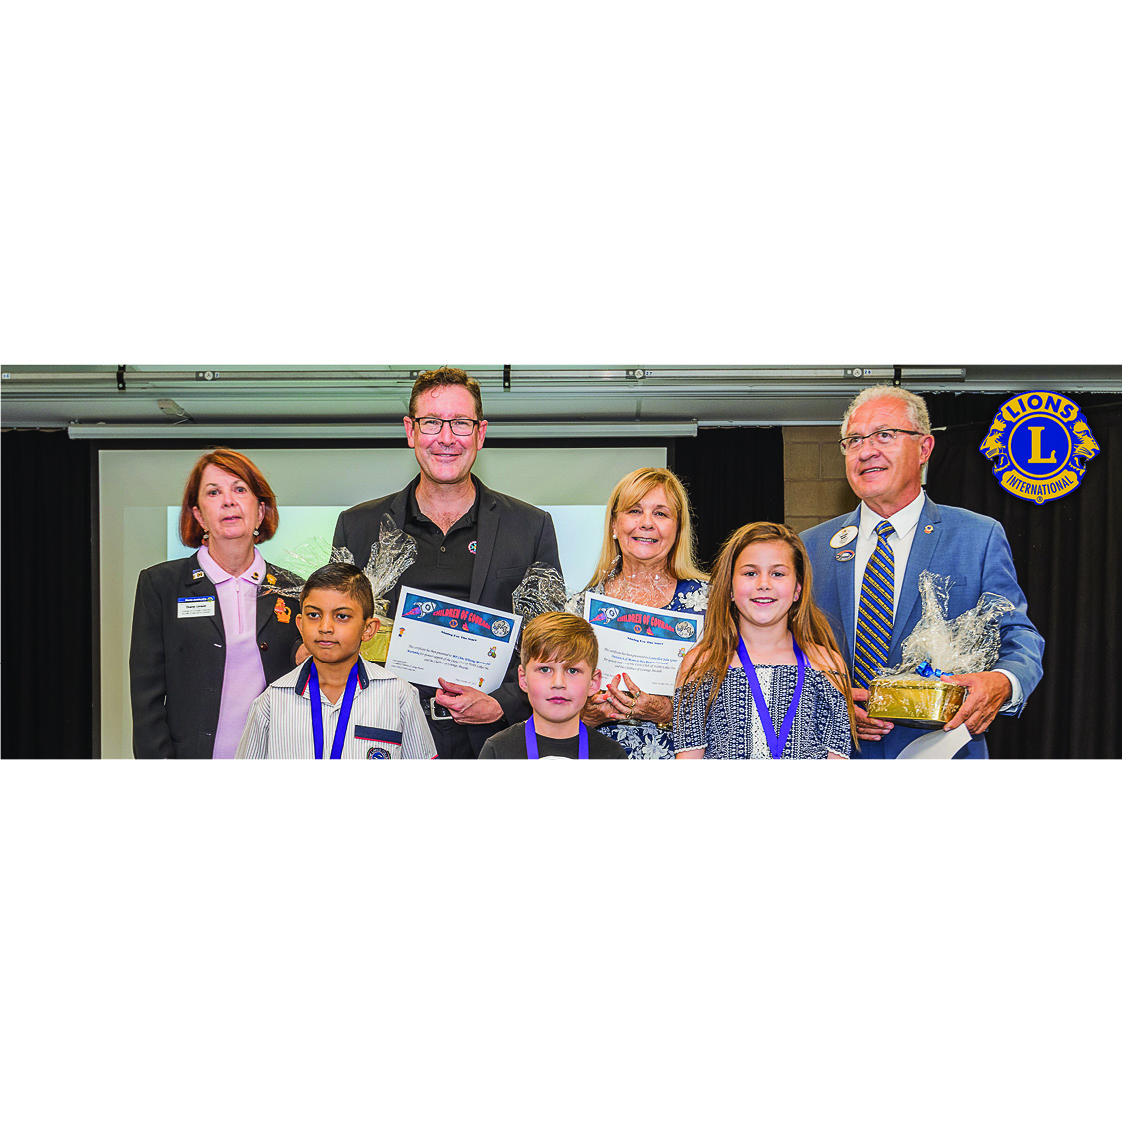 Lions Children of Courage Awards